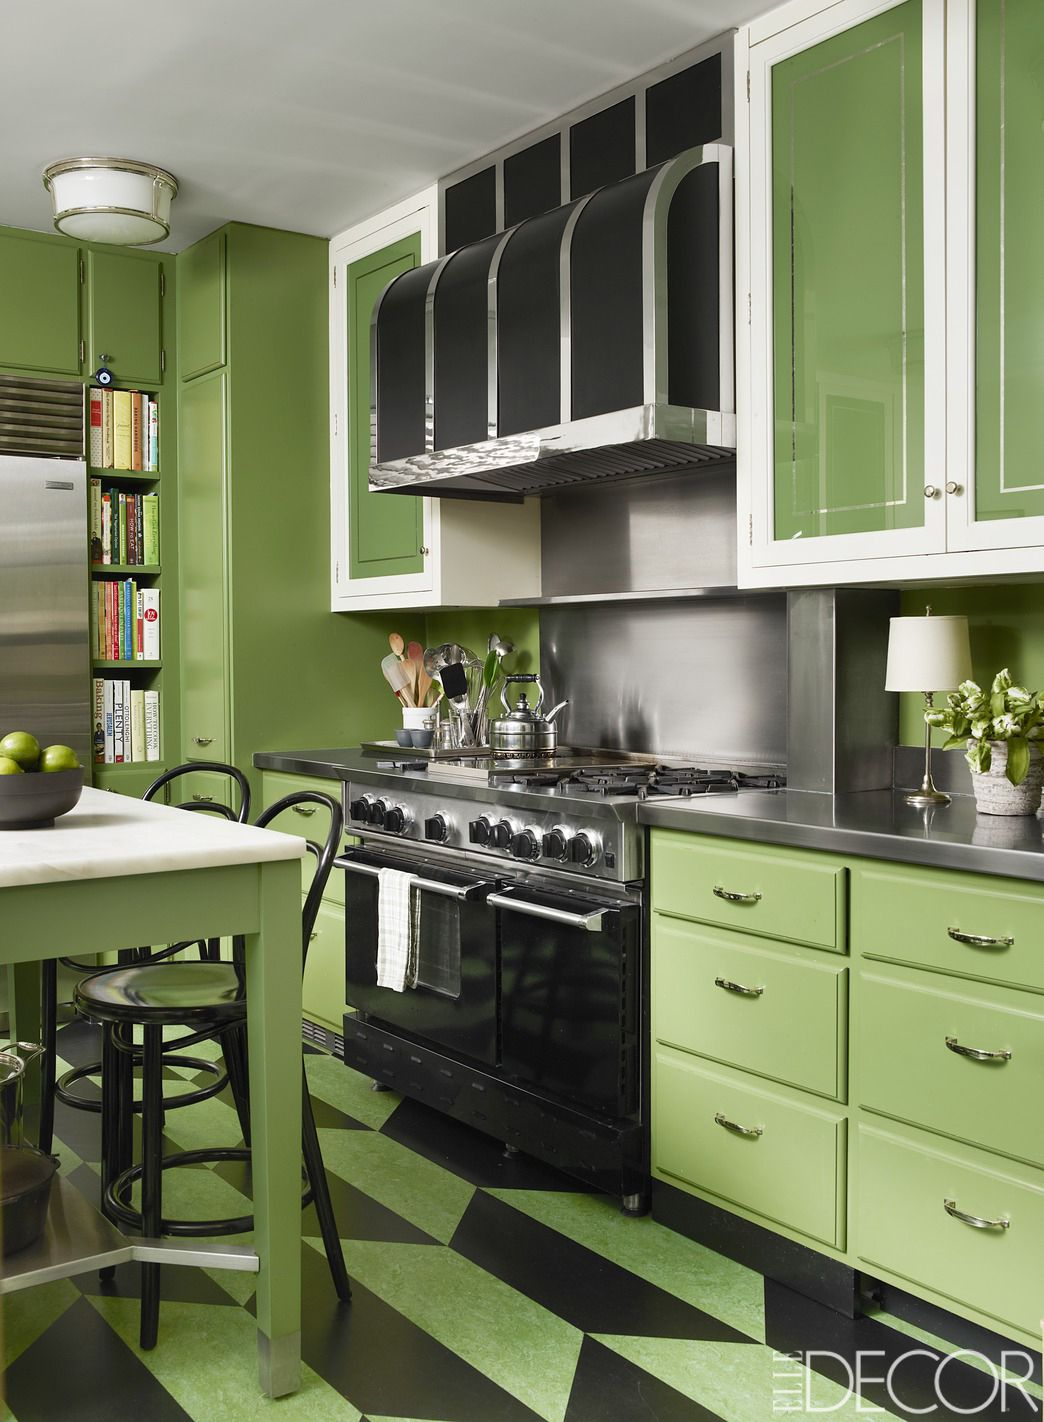 Kitchen Design 50 small kitchen design ideas - decorating tiny kitchens